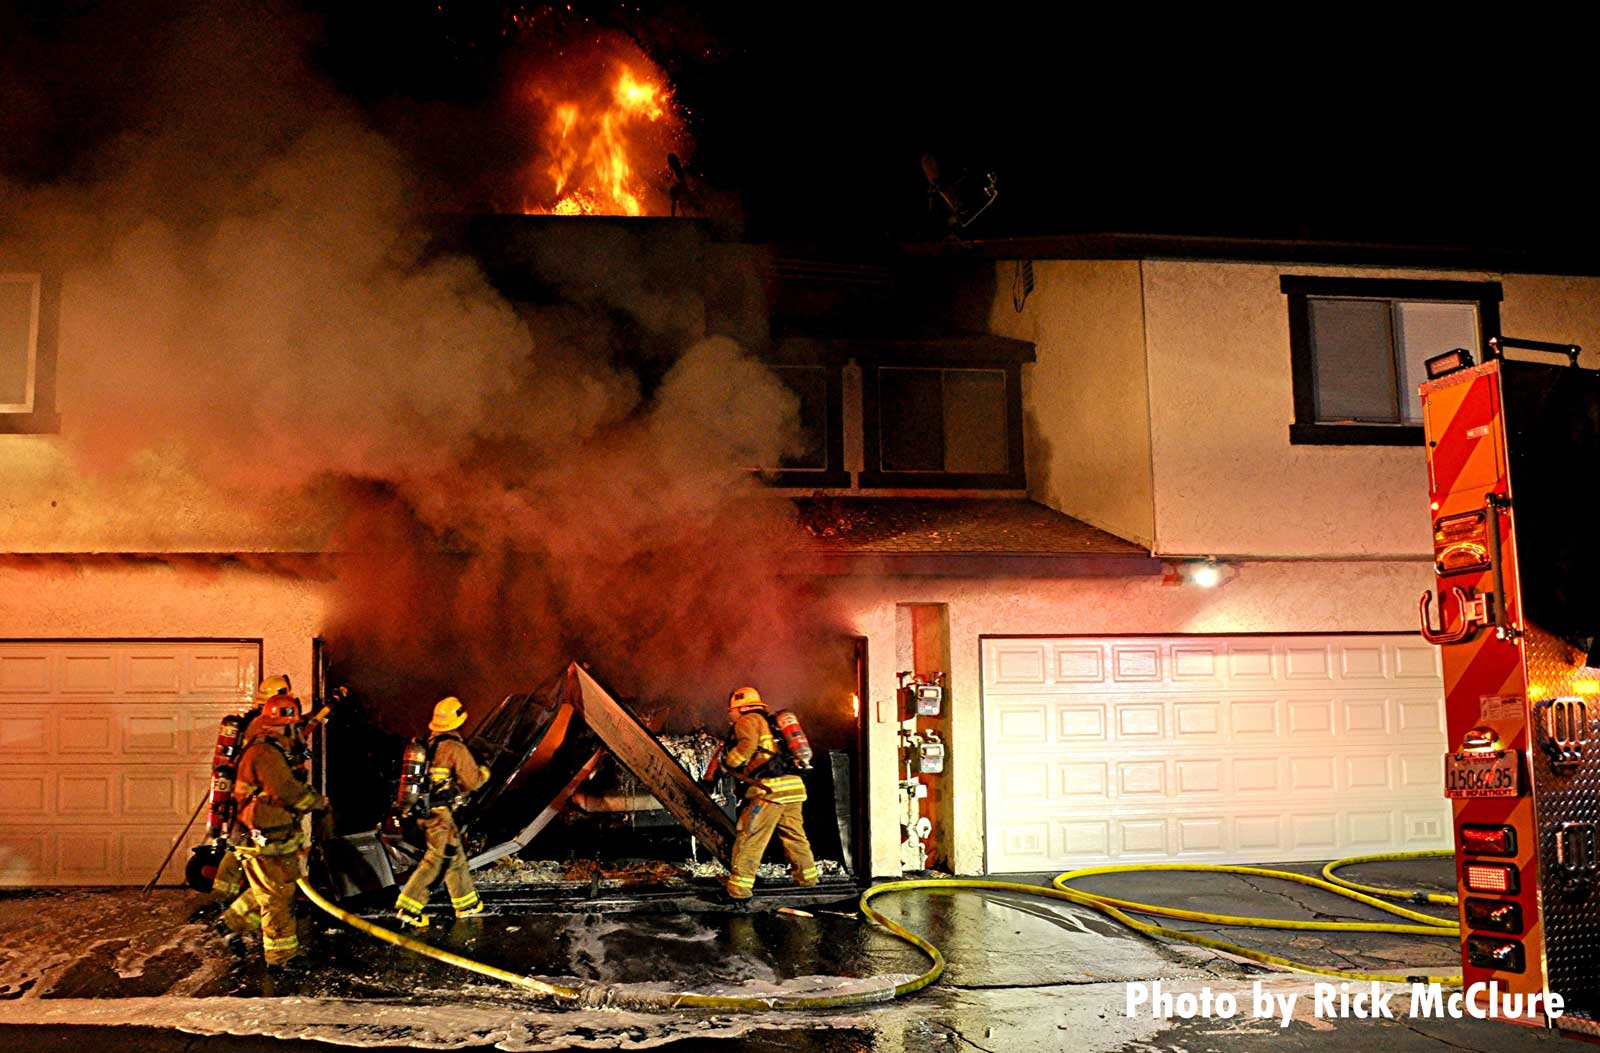 Firefighters on a hoseline put water in the garage as flames vent from a room above